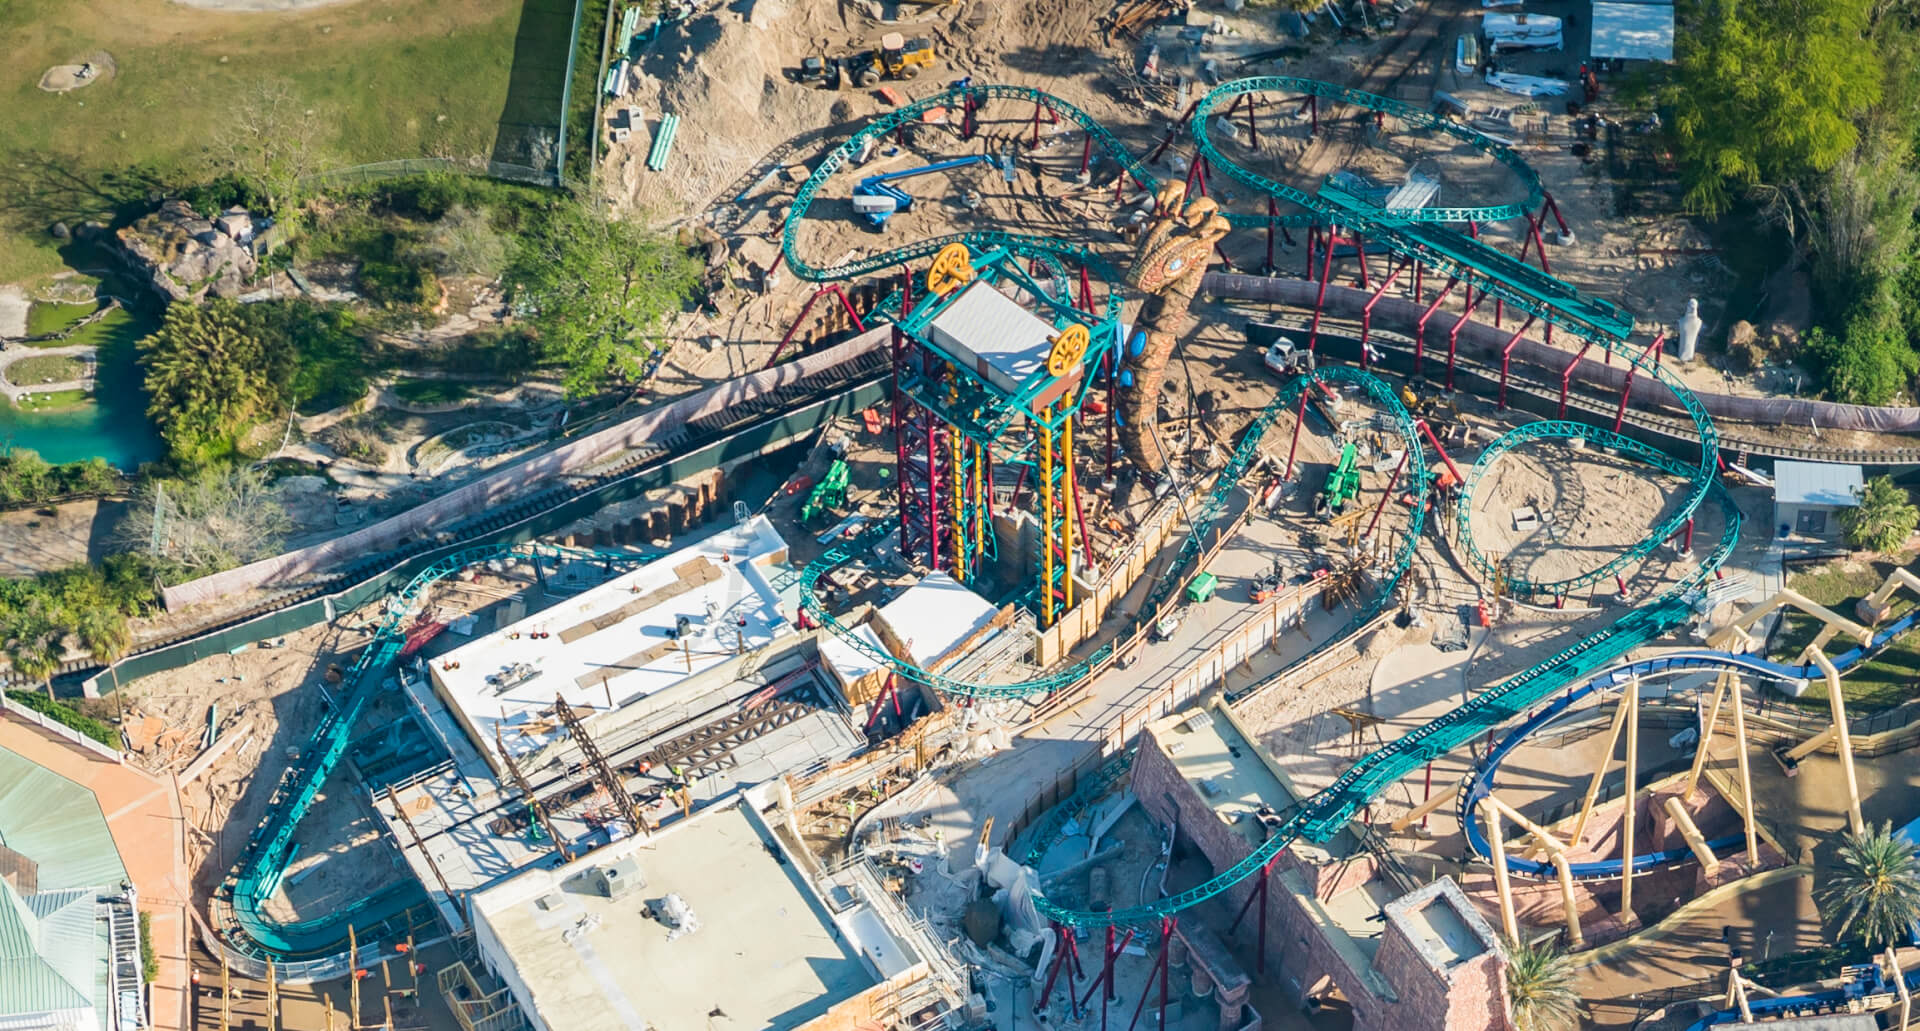 Final Track Piece Installed On Cobra 39 S Curse Roller Coaster At Busch Gardens Tampa Inside The